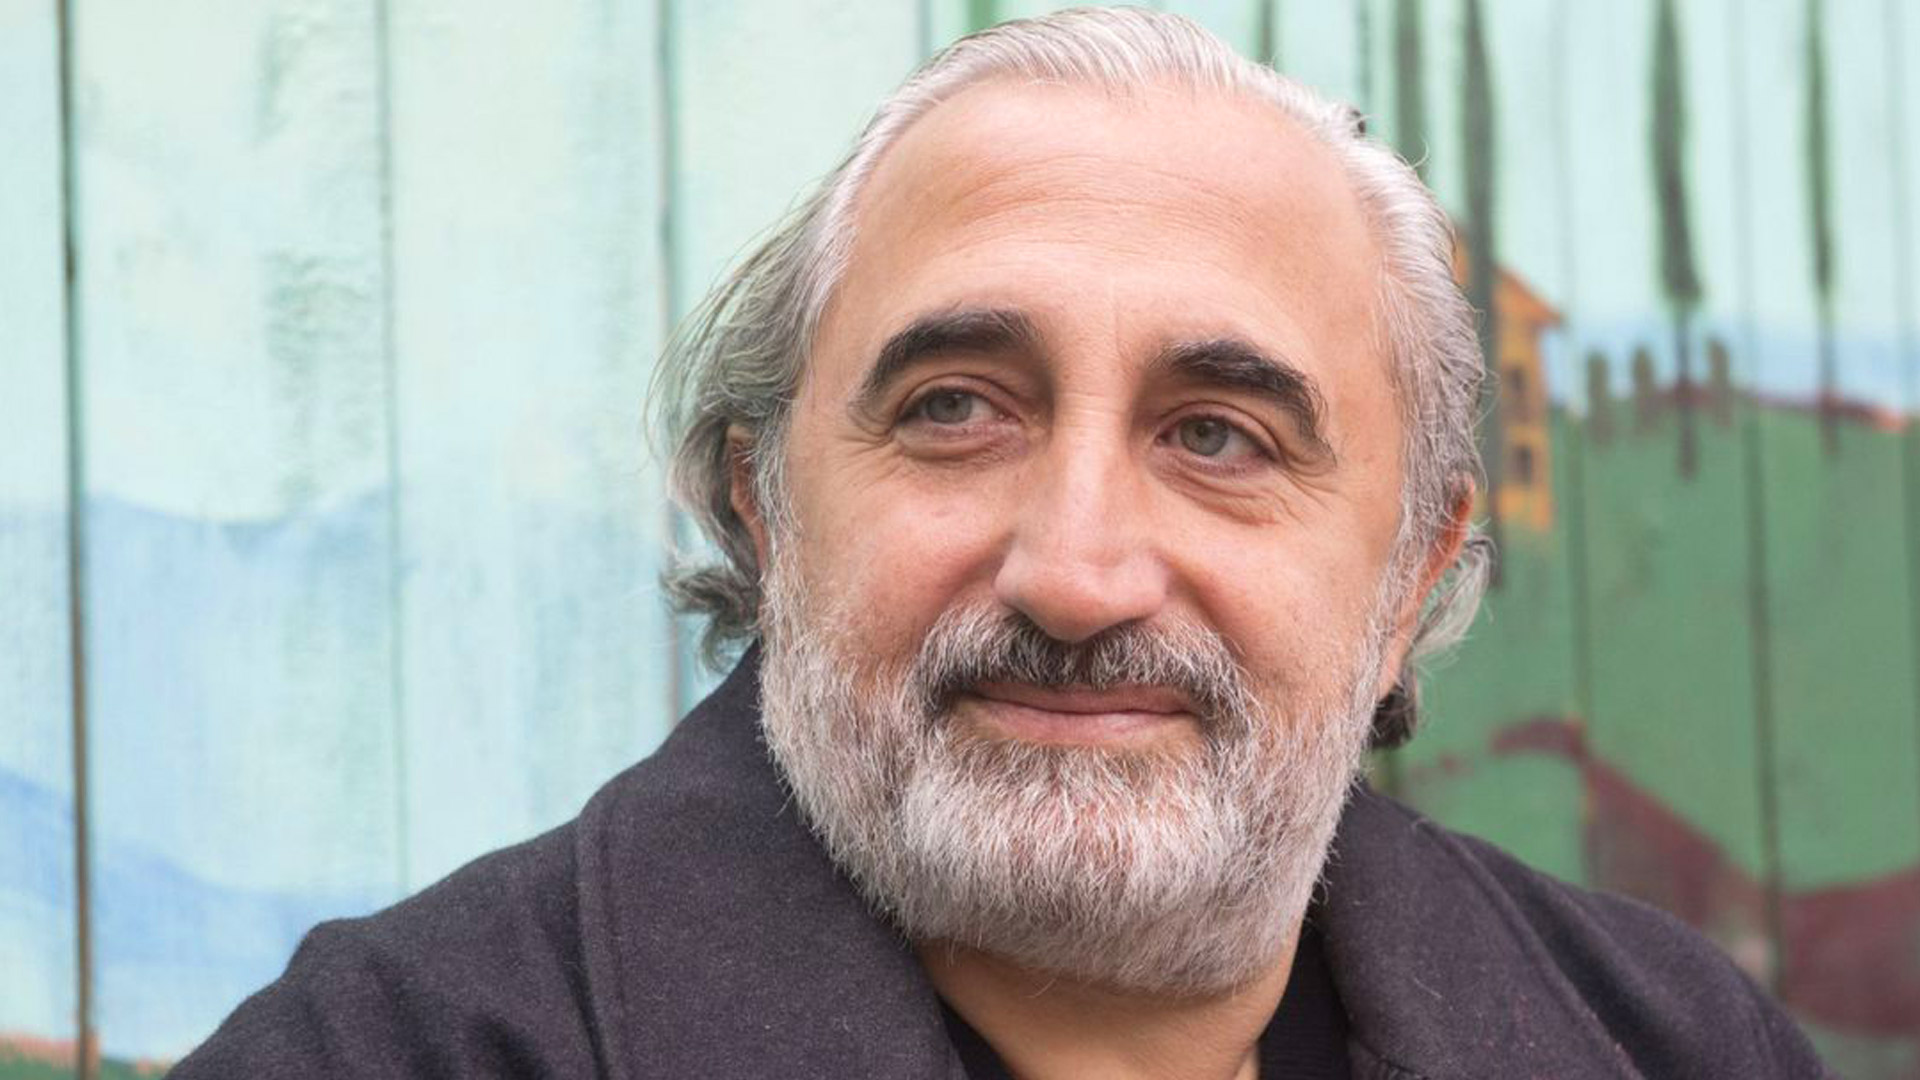 Professor Gad Saad Talks The Parasitic Mind and the Virality of Stupid Ideas